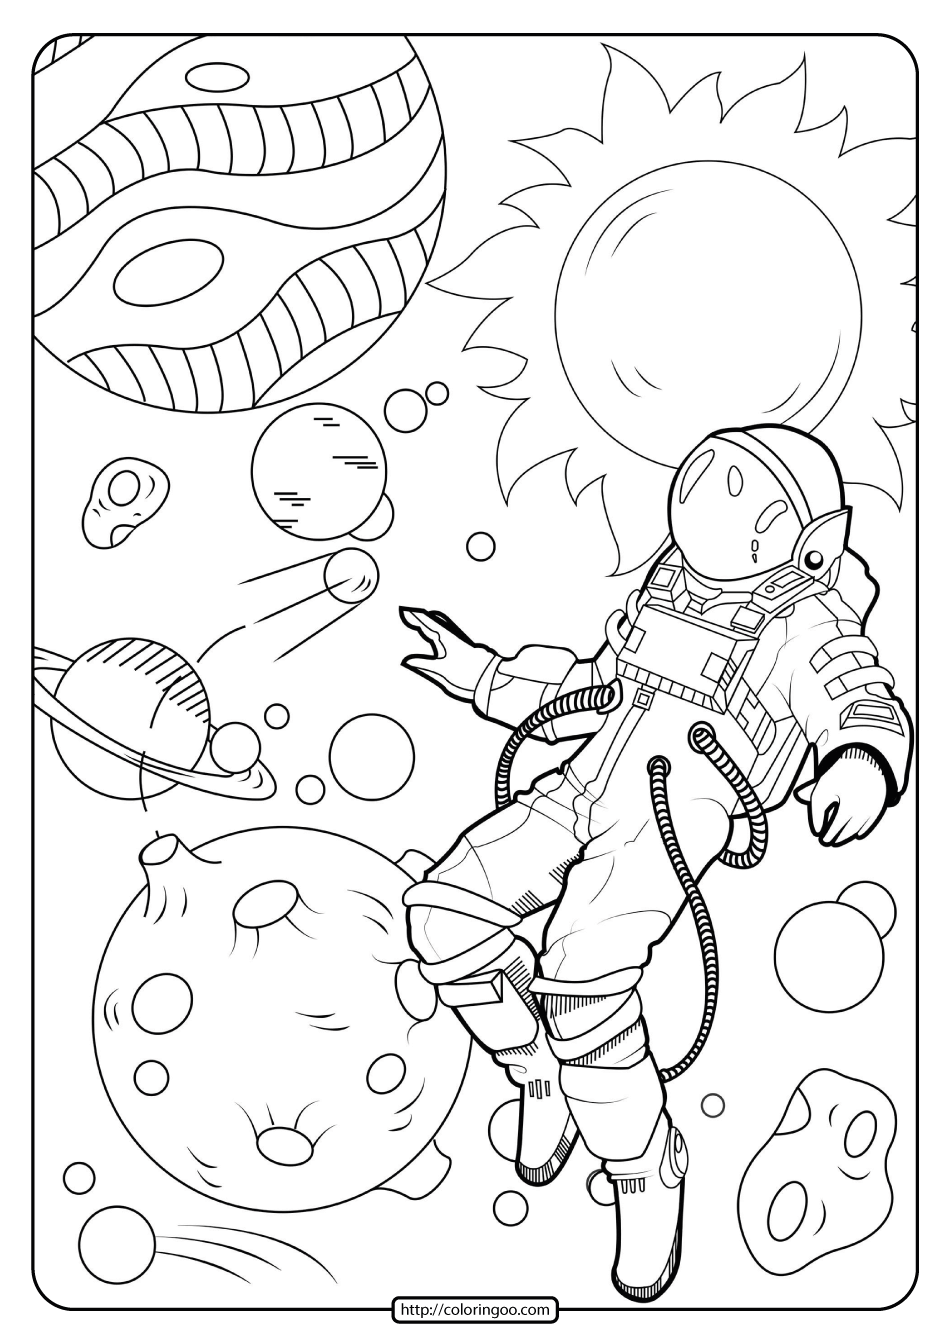 space coloring 20 free space coloring pages printable space coloring